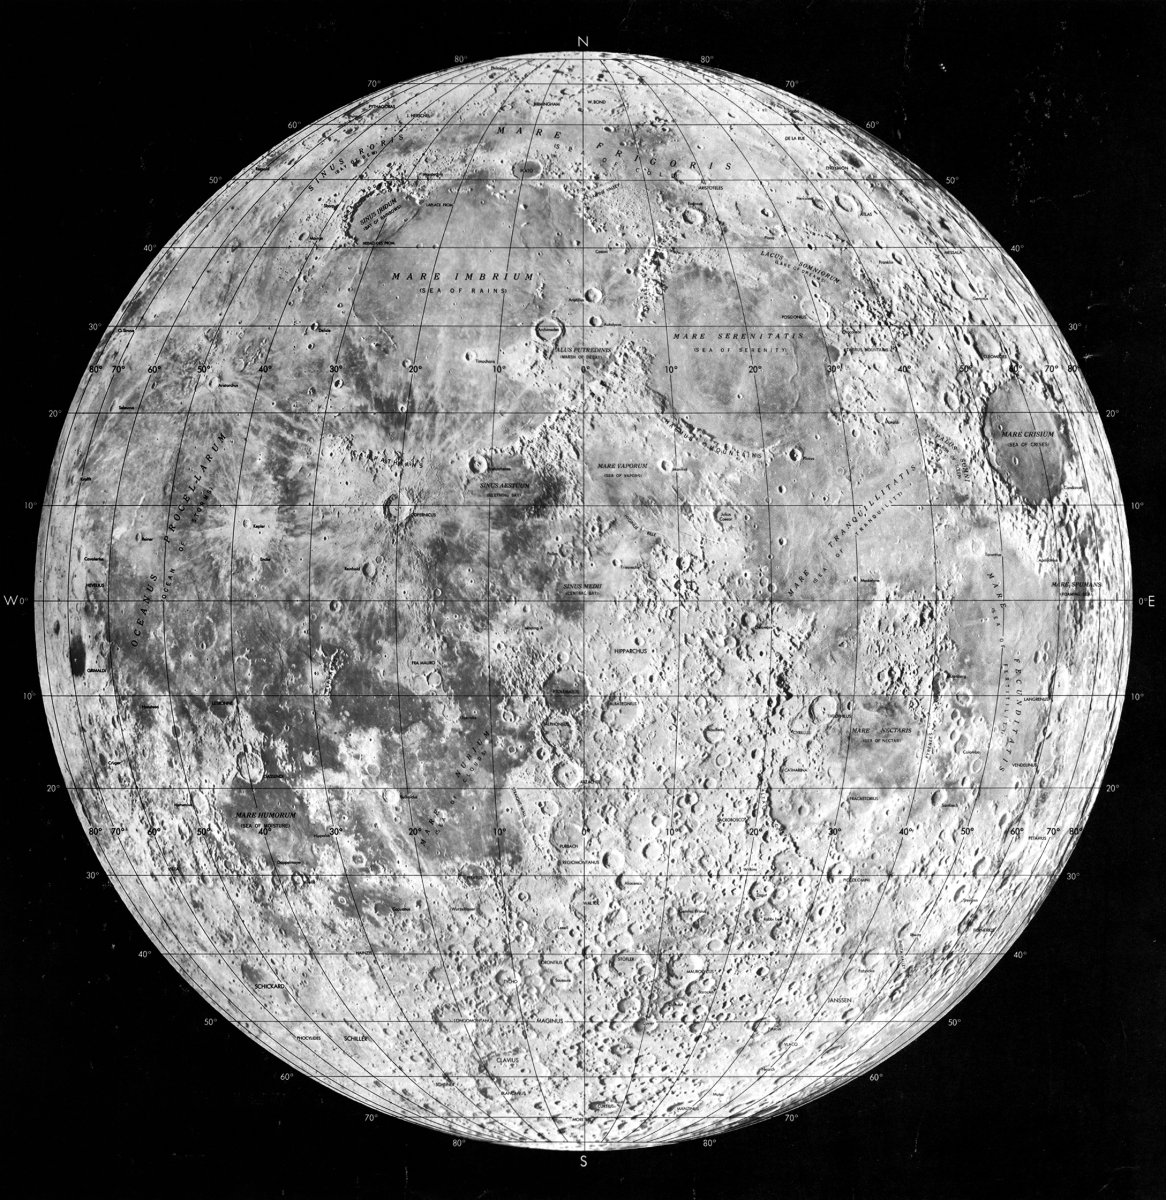 The search for ever more complete, complex, and detailed lunar maps was one of the obsessions of lunar astronomers.